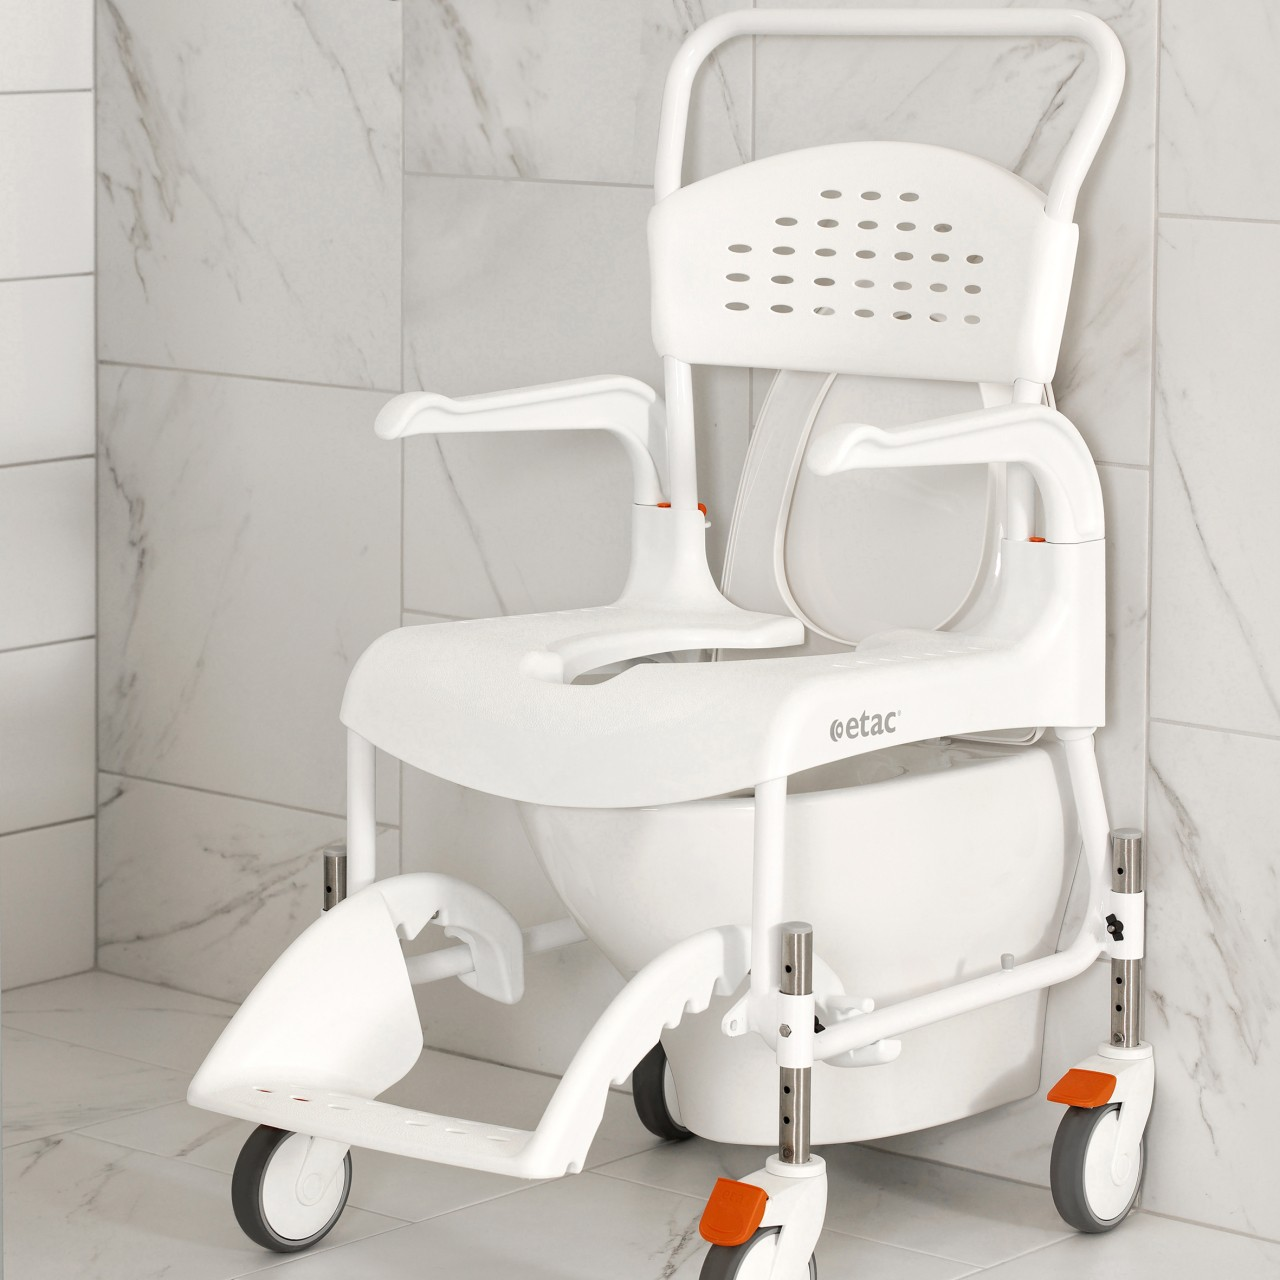 bfd3e0aff46 Etac Clean Height Adjustable Shower Commode